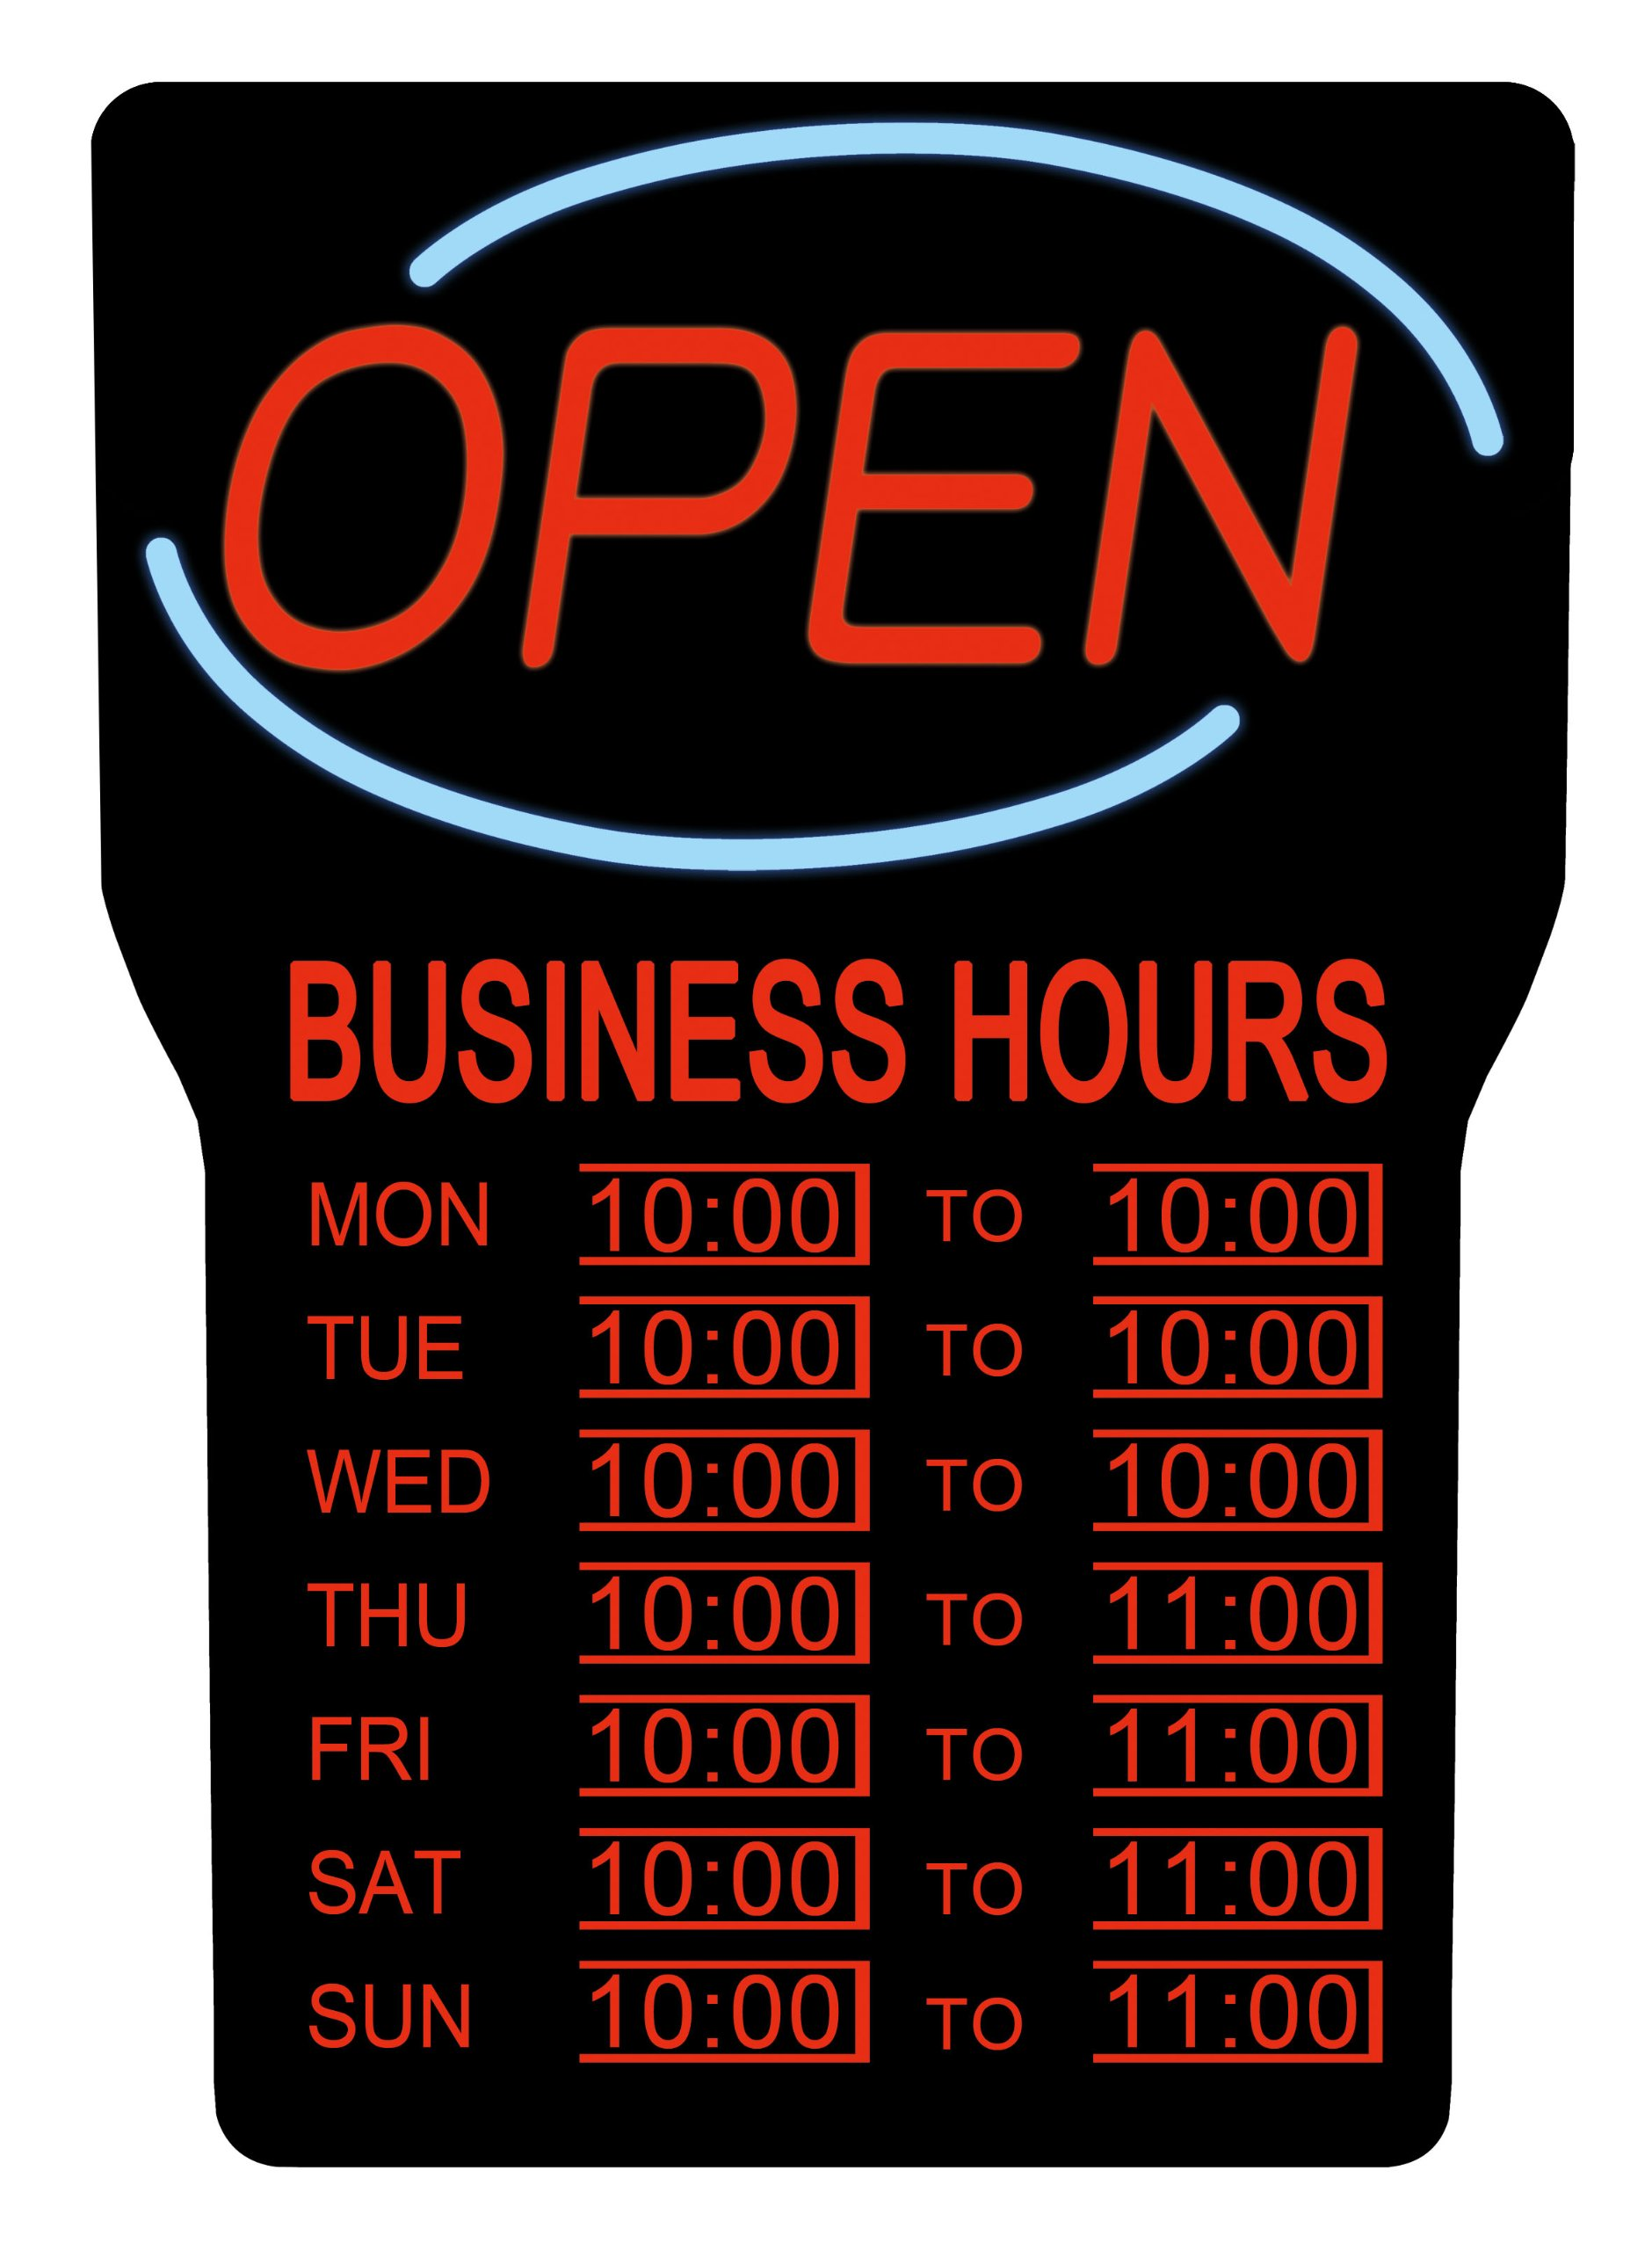 Royal Sovereign Illuminated LED Business ''Open'' Sign with Hours (RSB-1342E) by Royal Sovereign